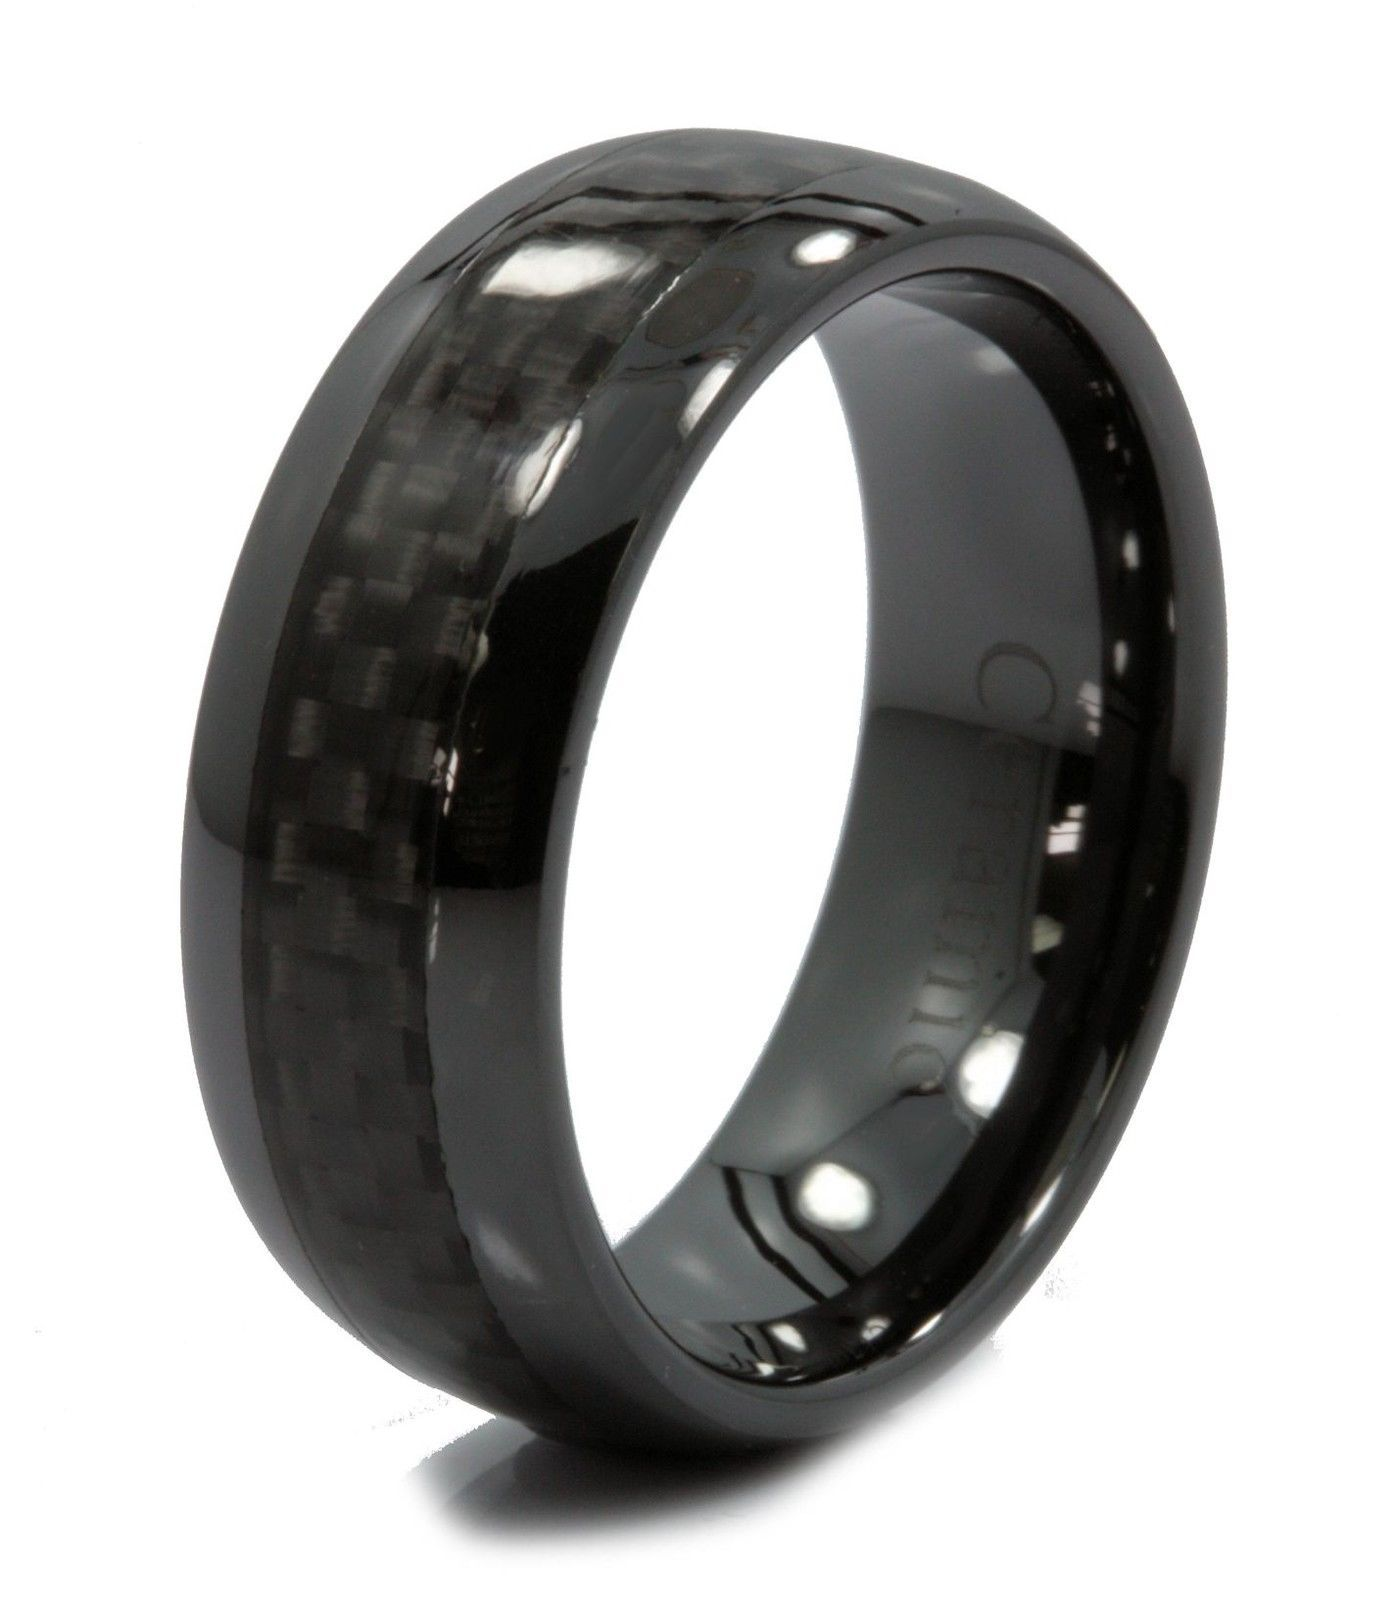 normal stainless ring product rings armani wedding emporio s lyst men jewelry carbon and gallery mens steel iconic black fiber